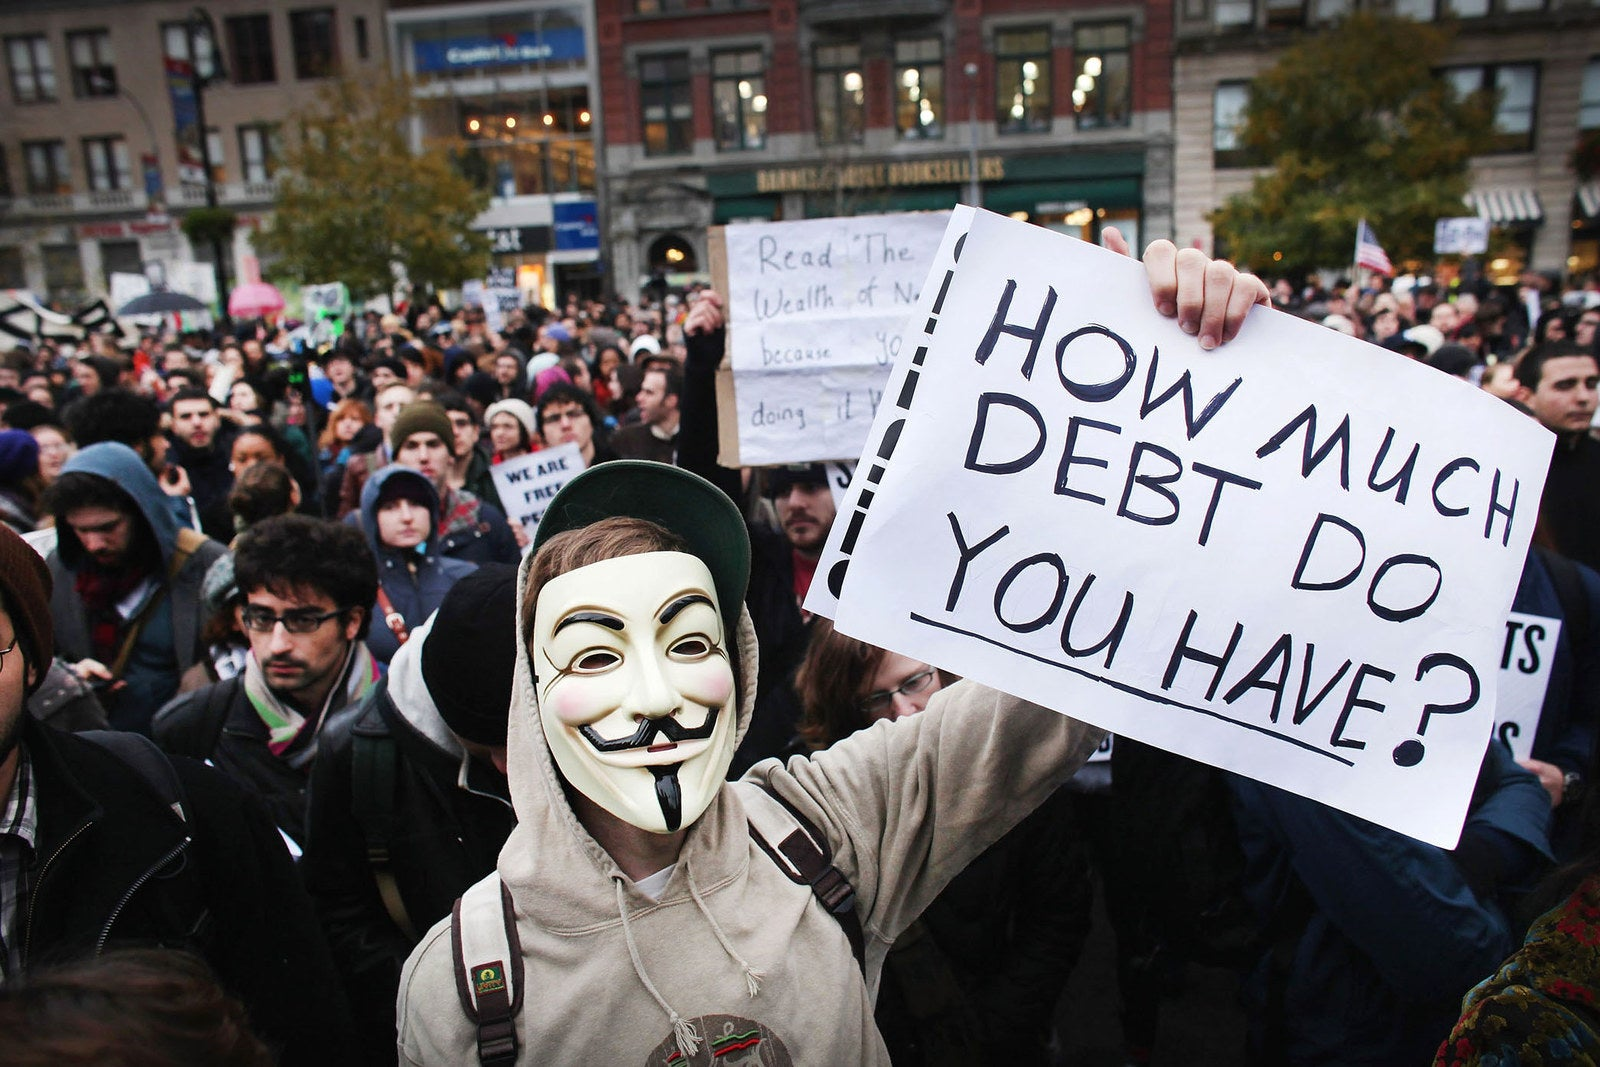 A large gathering of protesters affiliated with the Occupy Wall Street movement attend a rally in Union Square on Nov. 17, 2011.